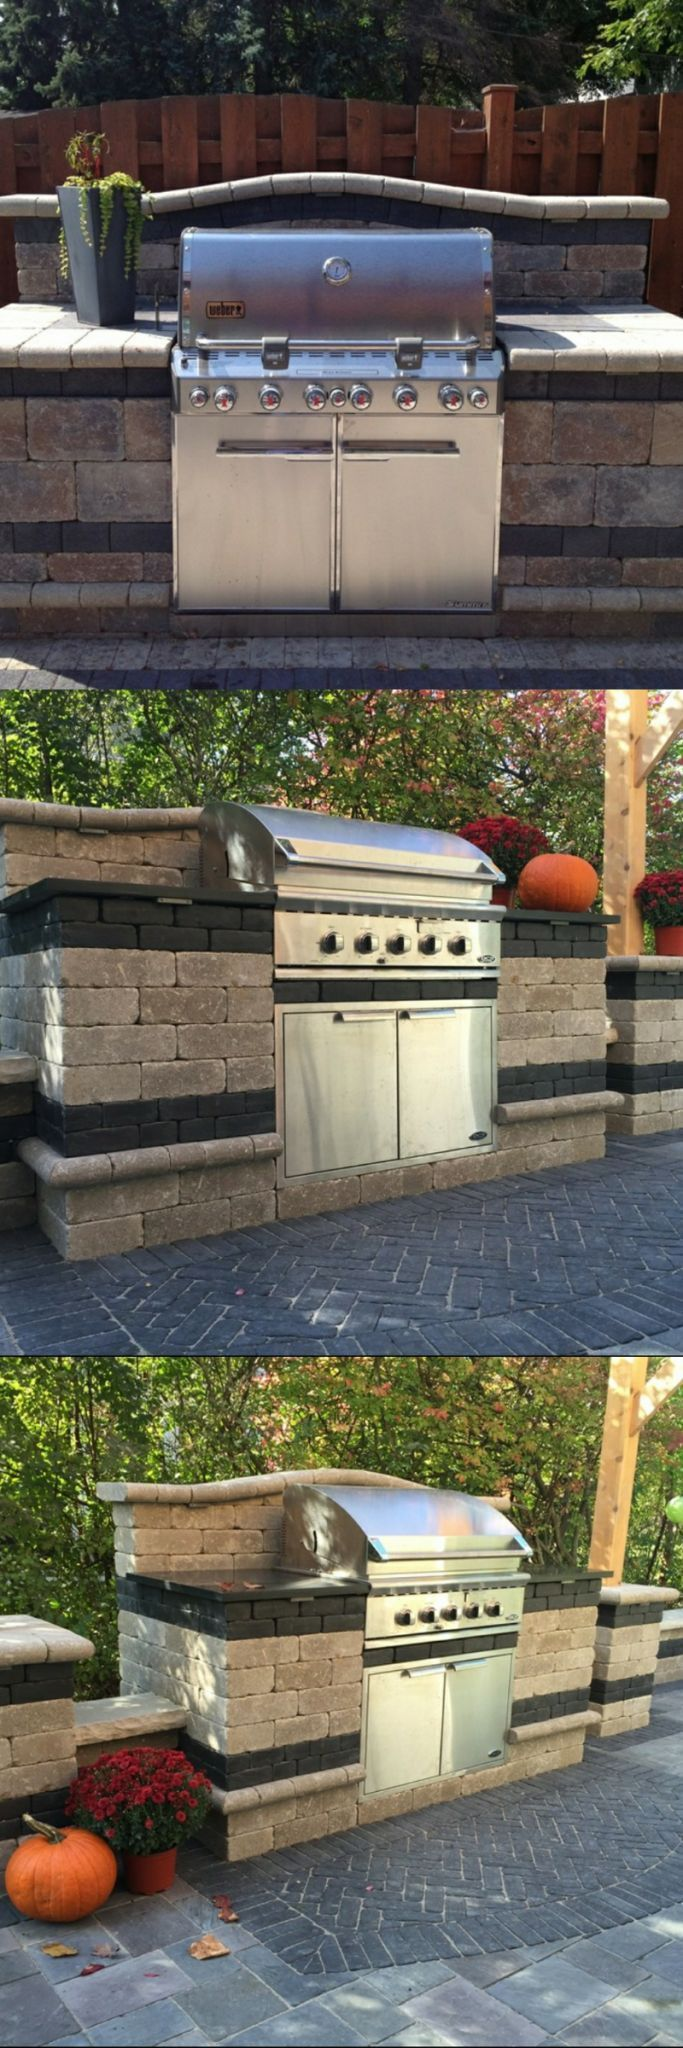 outdoor kitchen ideas covered outdoor kitchen ideas covered ideas kitchen outdoor in 2020 on outdoor kitchen easy id=78139